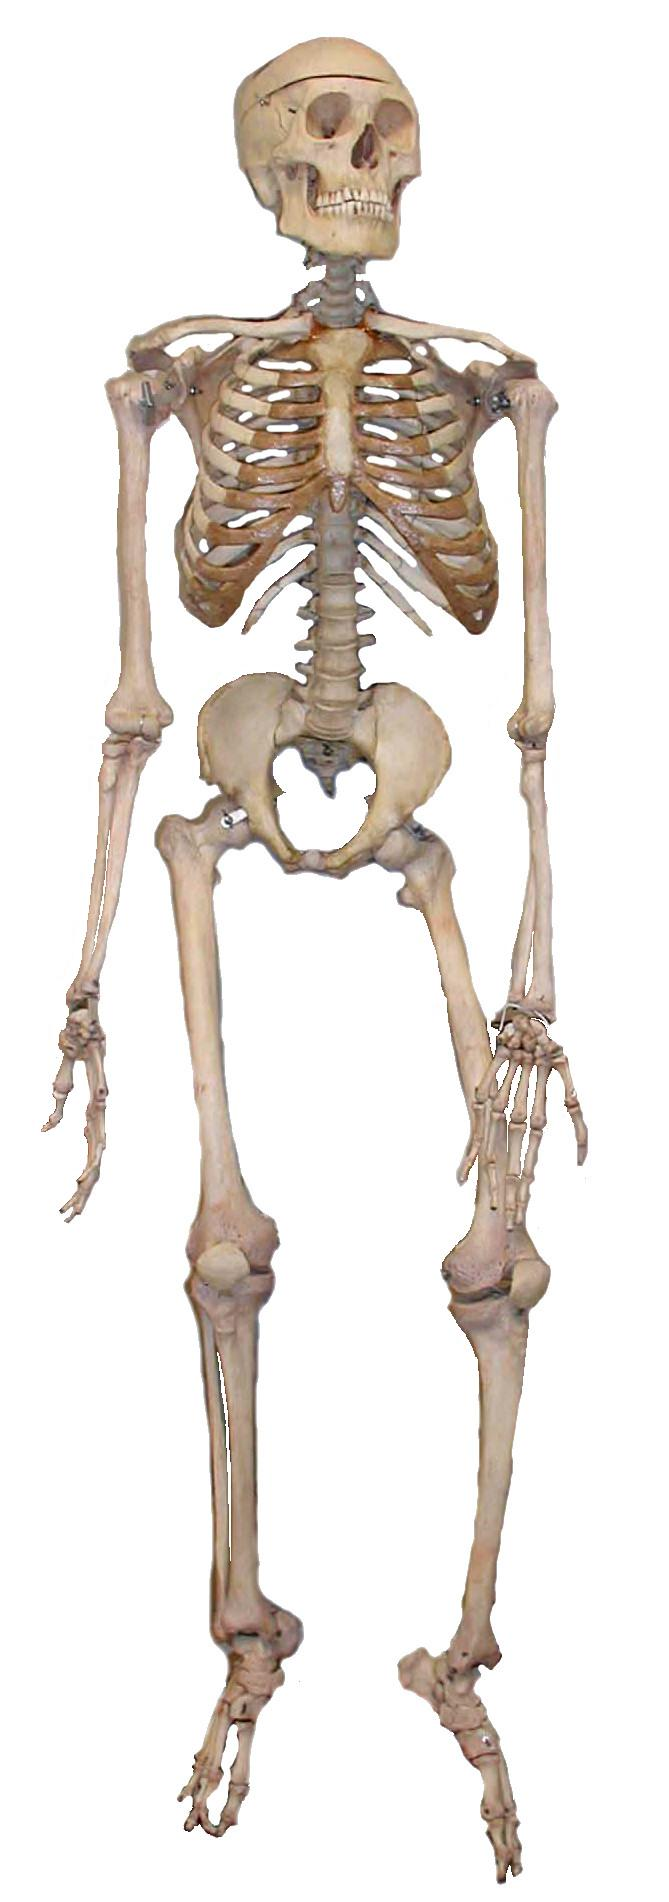 [Image: Skeleton2.jpg]